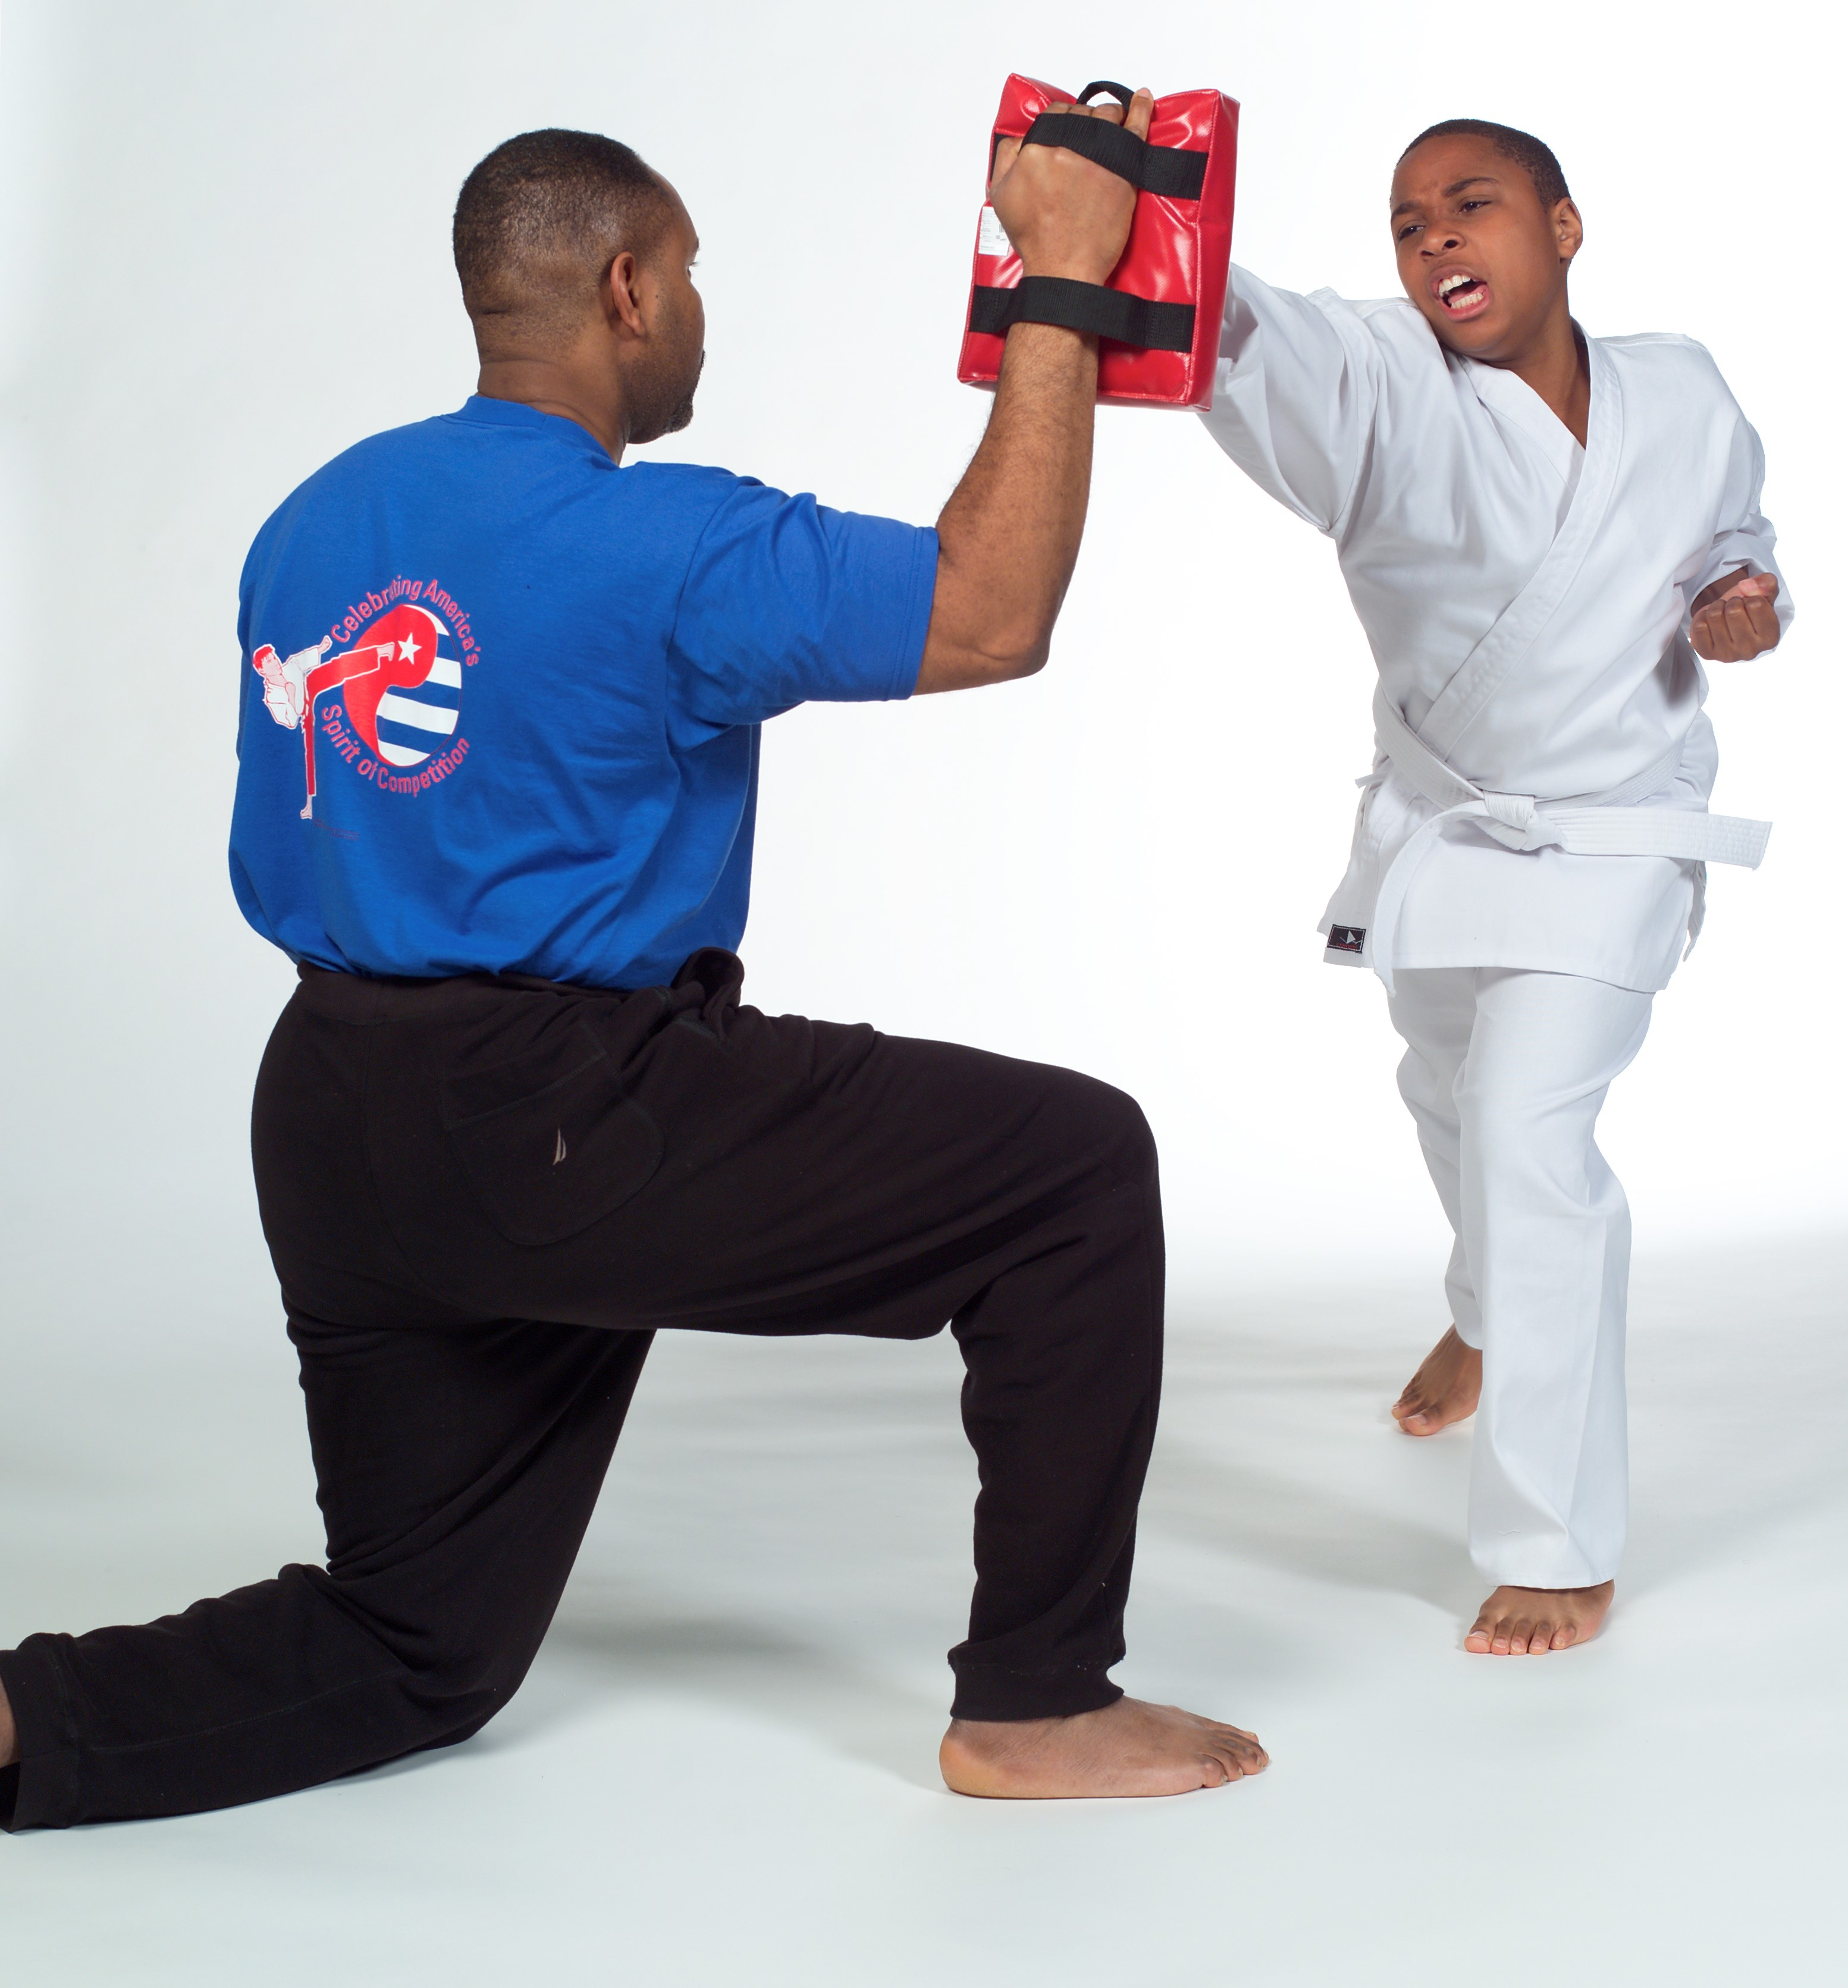 A father-son duo participate in a martial arts class.